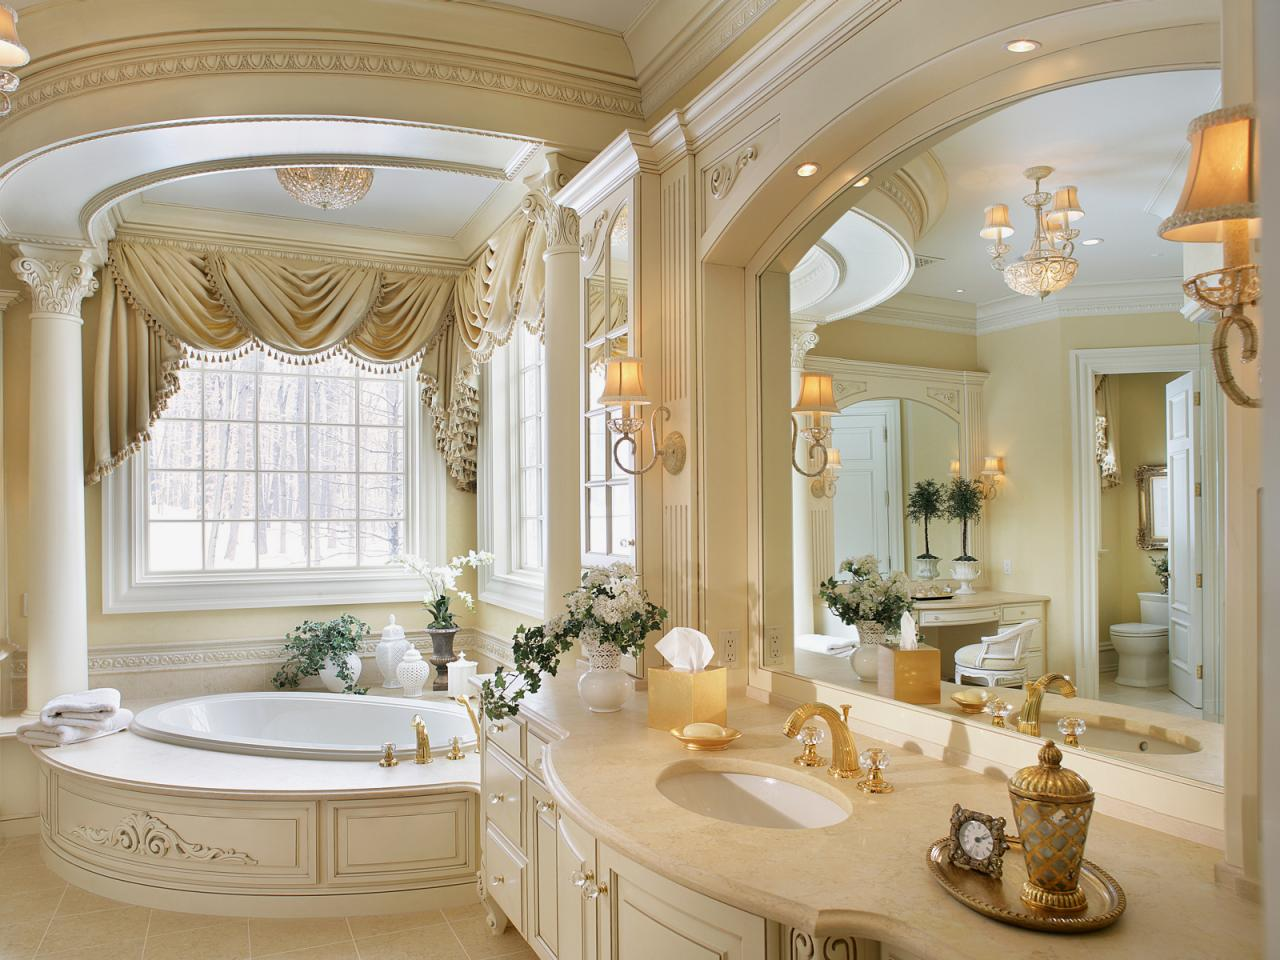 Master Bathroom With Romantic Style